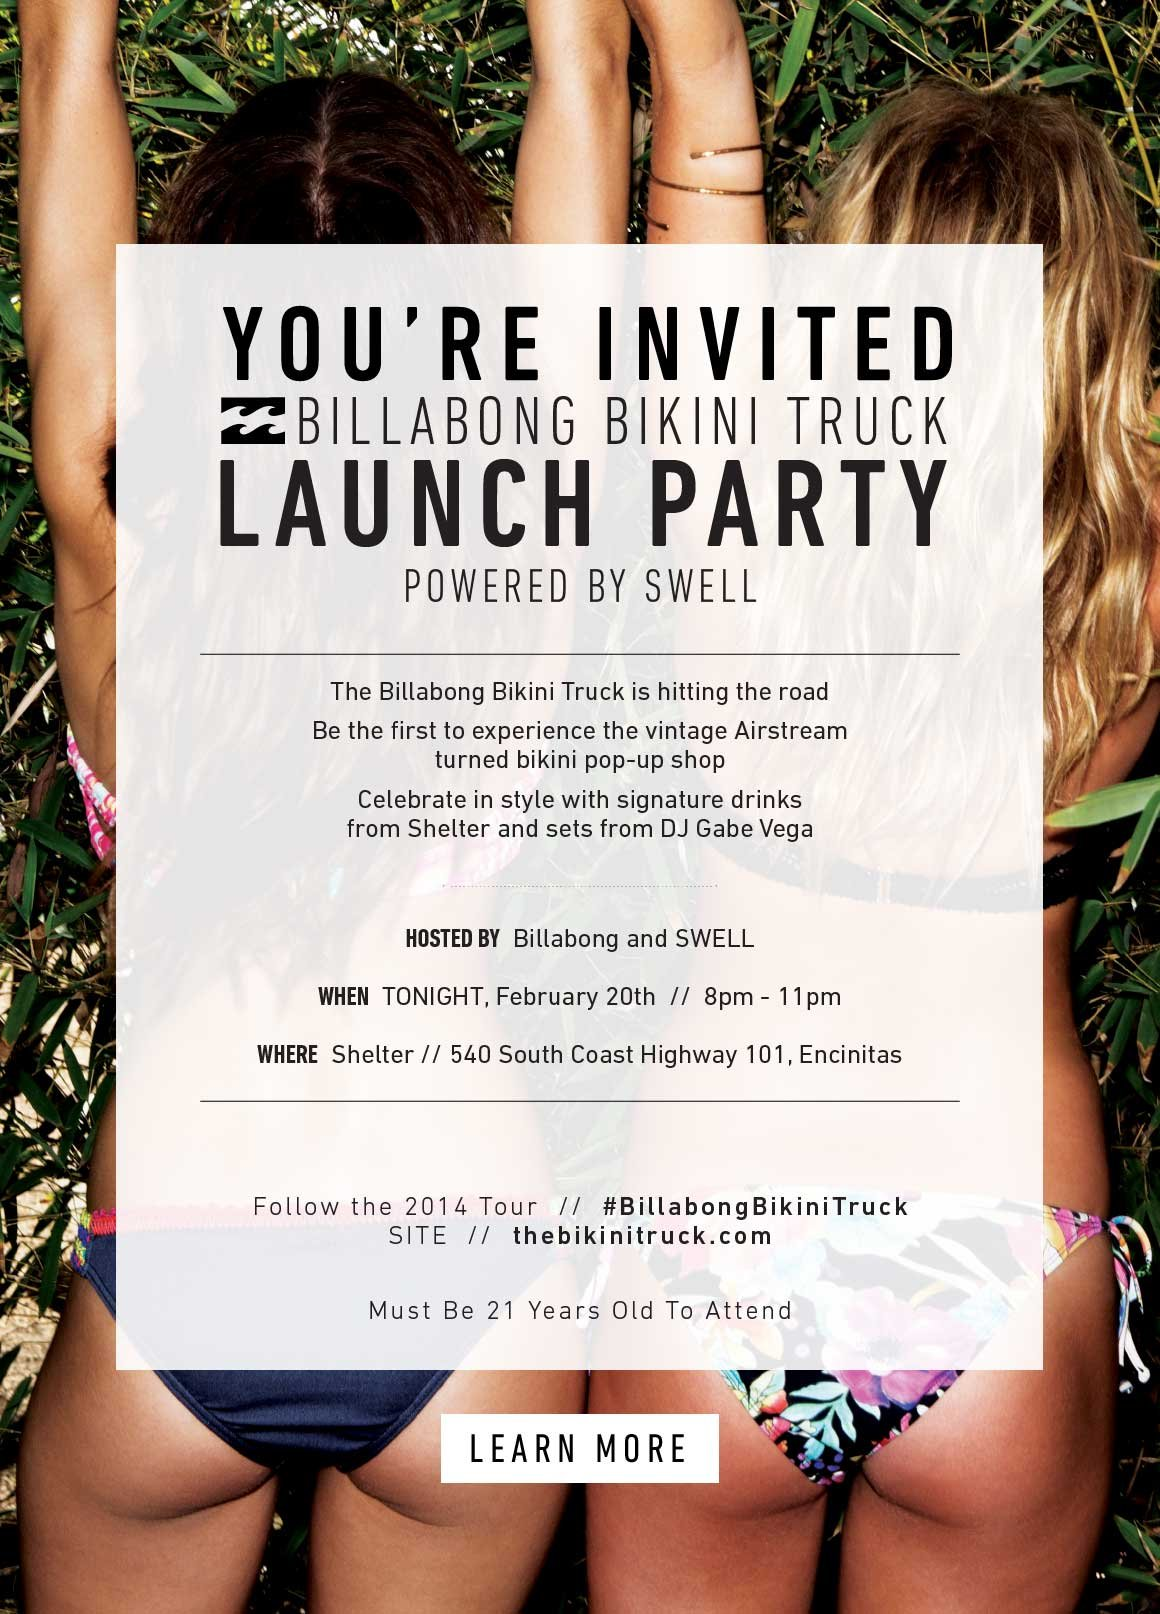 Your Invited: The Billabong Bikini Truck Launch Party